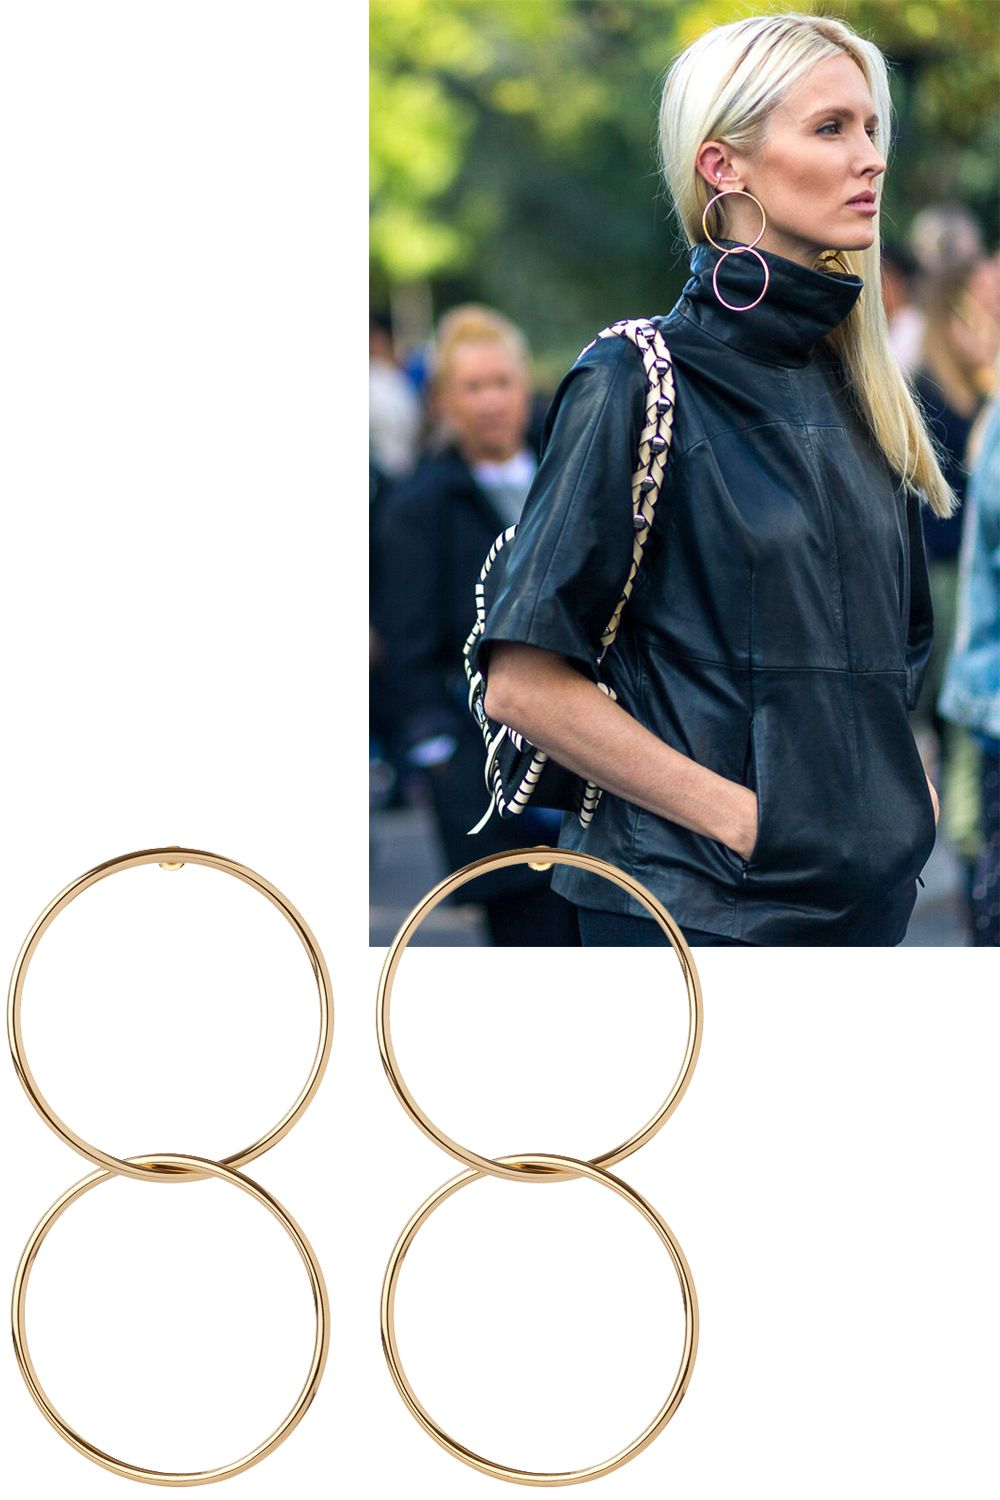 "<p>It's no secret that statement earrings are on-trend, and&nbsp&#x3B;Kate Davidson Hudson&nbsp&#x3B;<span class=""redactor-invisible-space"">layered hers&nbsp&#x3B;with a turtleneck.&nbsp&#x3B;</span></p><p><em data-redactor-tag=""em"" data-verified=""redactor"">Jennifer Fisher earrings, $315 (pre-order), <strong data-redactor-tag=""strong"" data-verified=""redactor""><a href=""https://shop.harpersbazaar.com/j/jennifer-fisher/interlocking-smooth-circle-earrings-9699.html"" target=""_blank"">shopBAZAAR.com</a></strong>.&nbsp&#x3B;</em></p>"